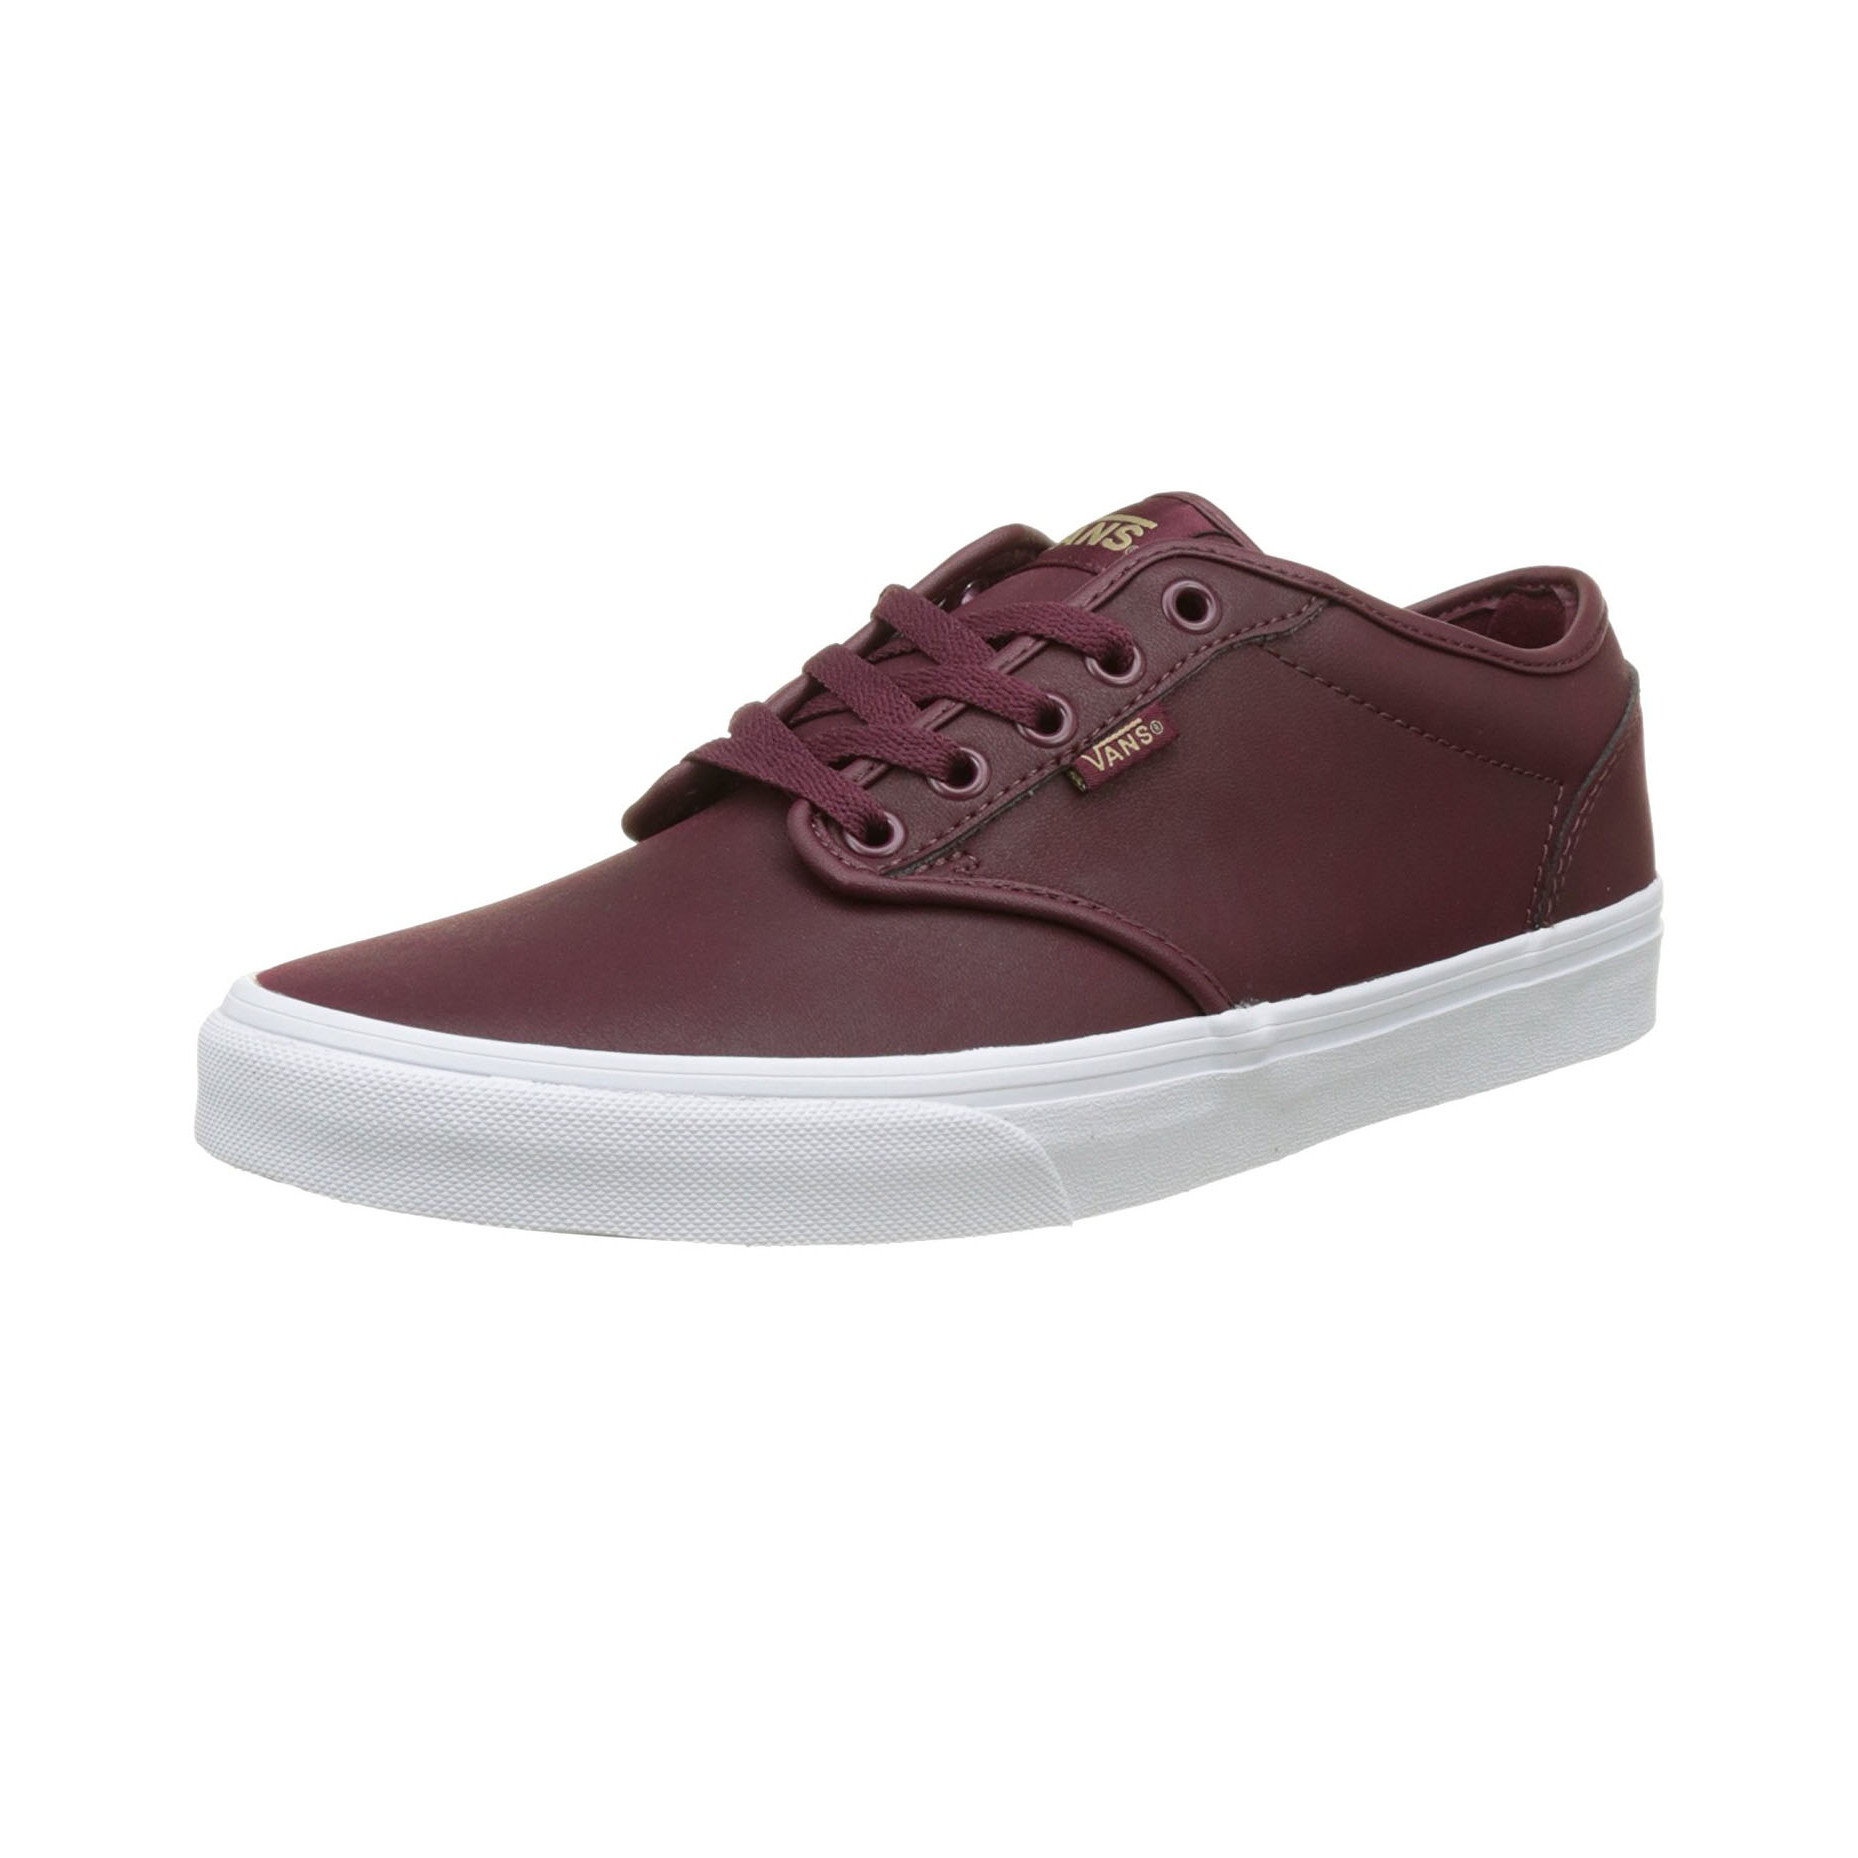 vans atwood brown leather